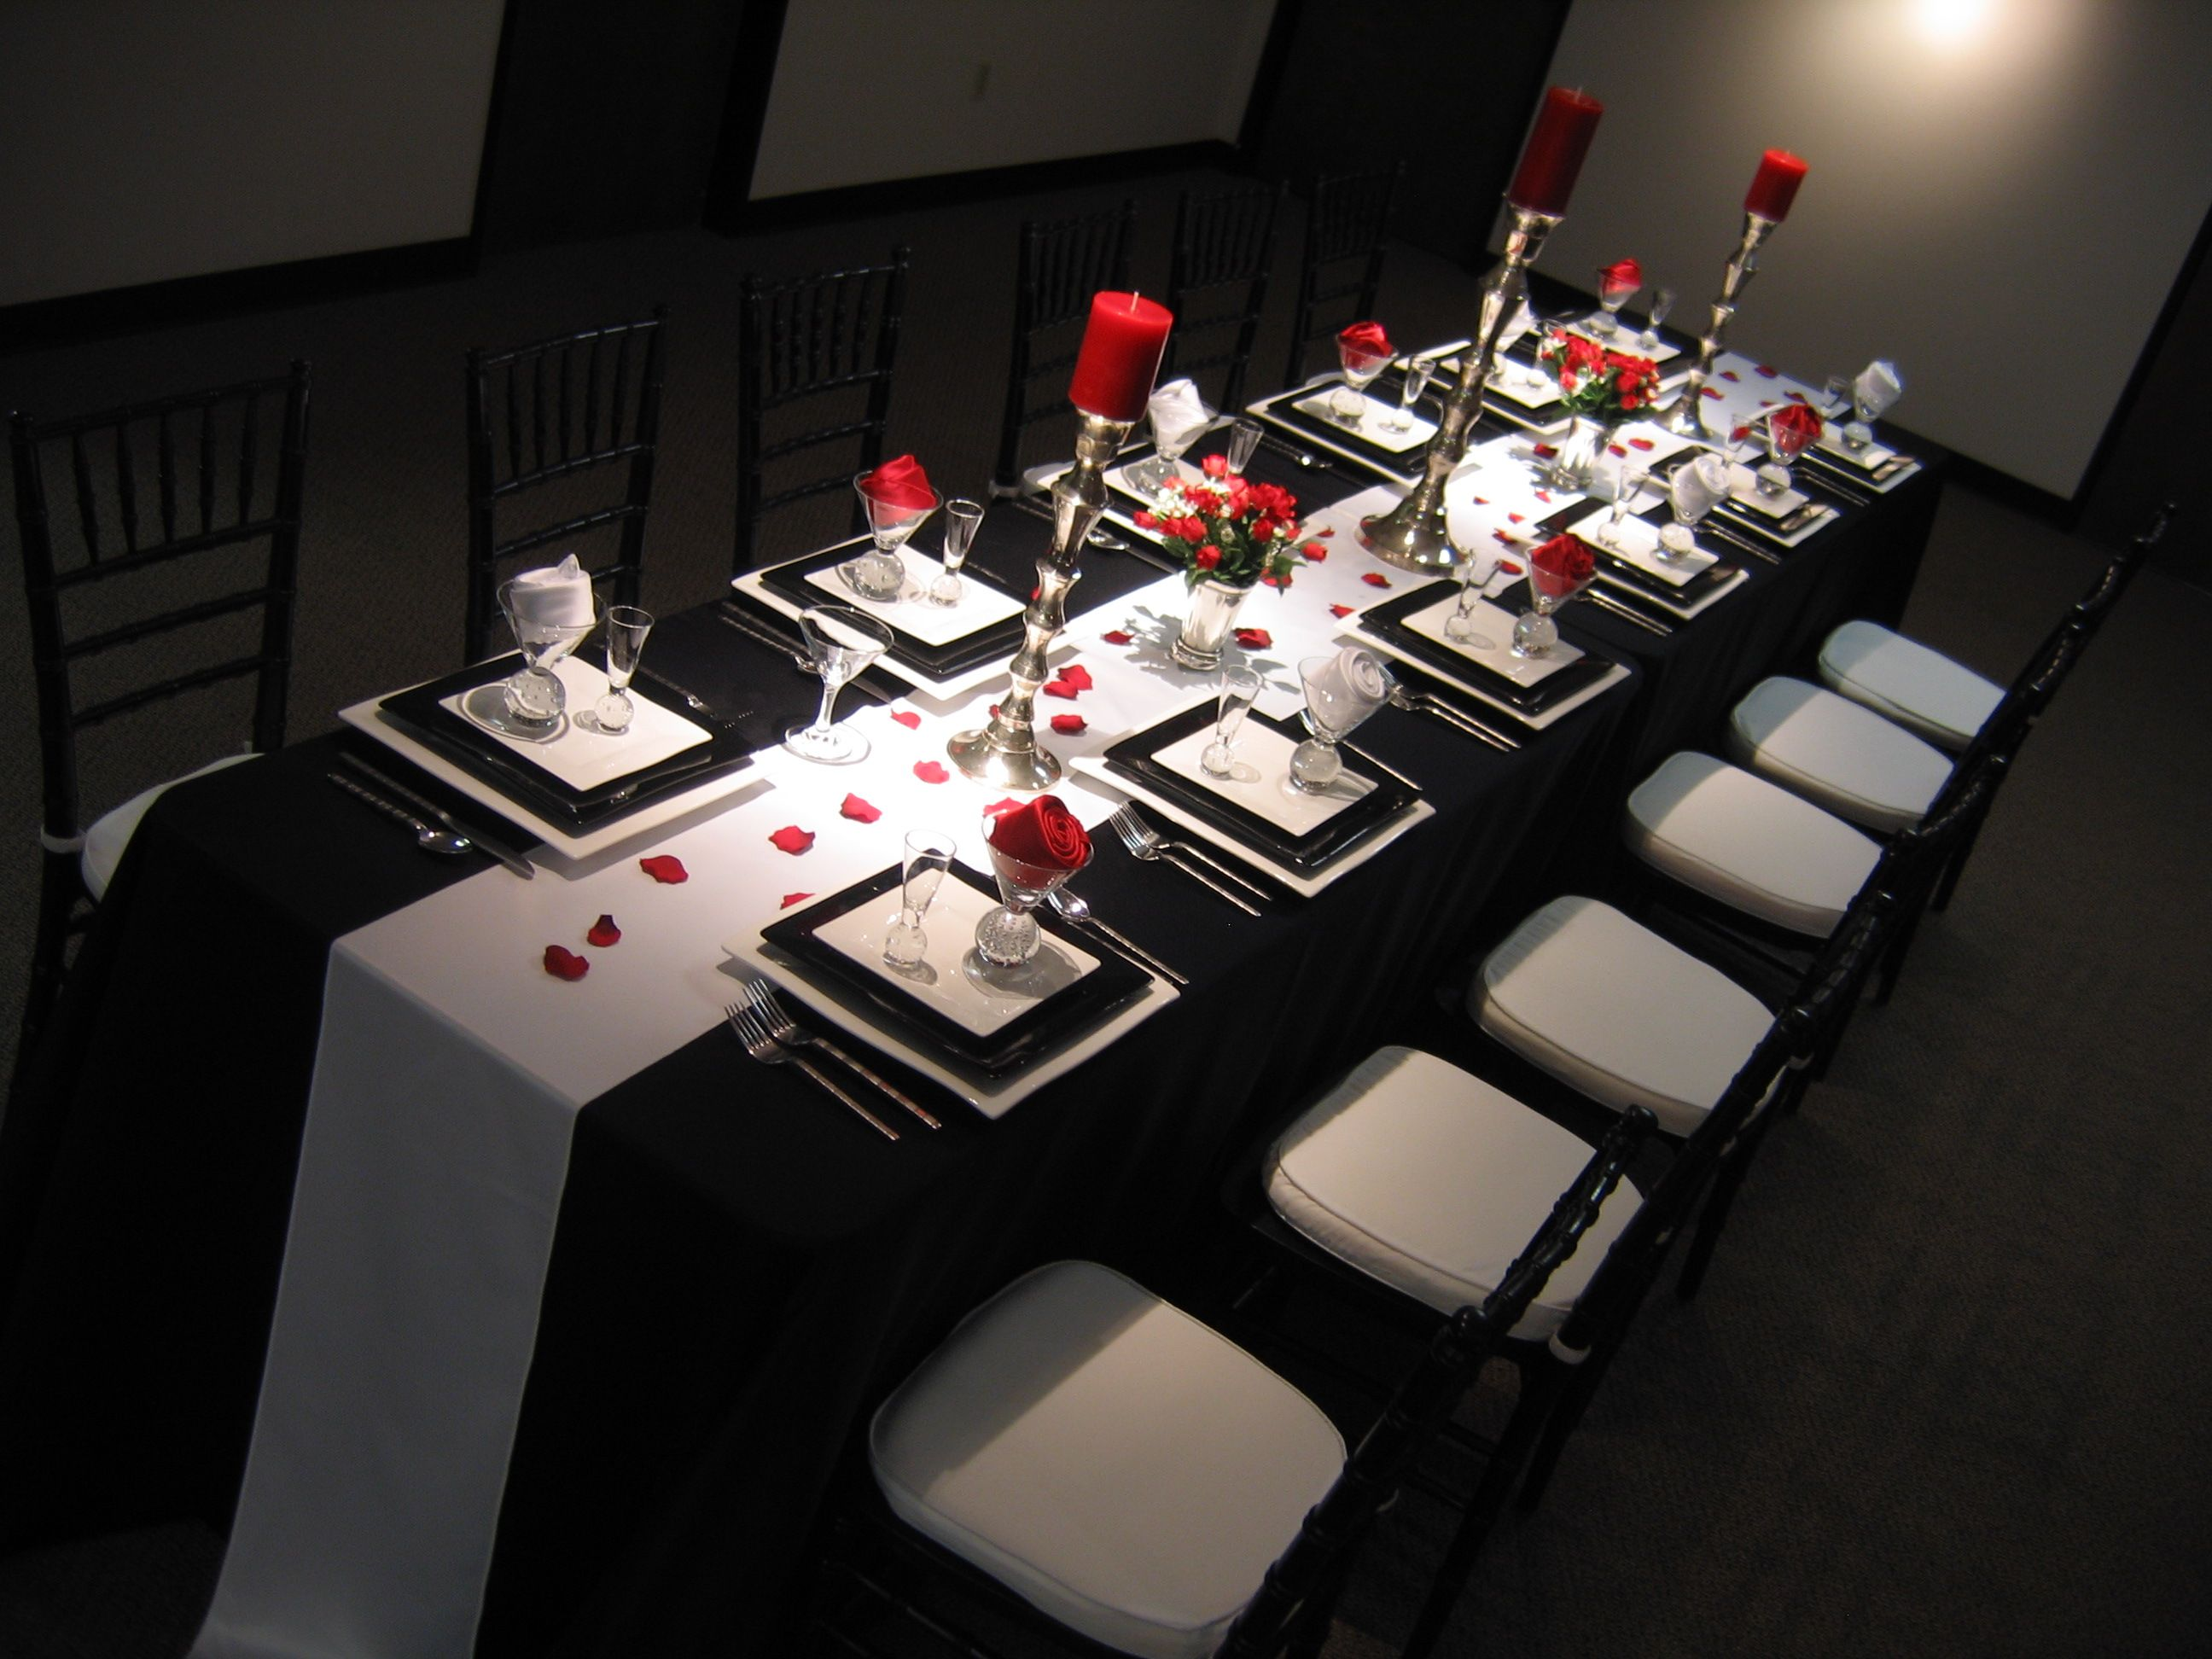 Wedding decoration ideas red and white  silver wedding anniversary decorating ideas  red black and white